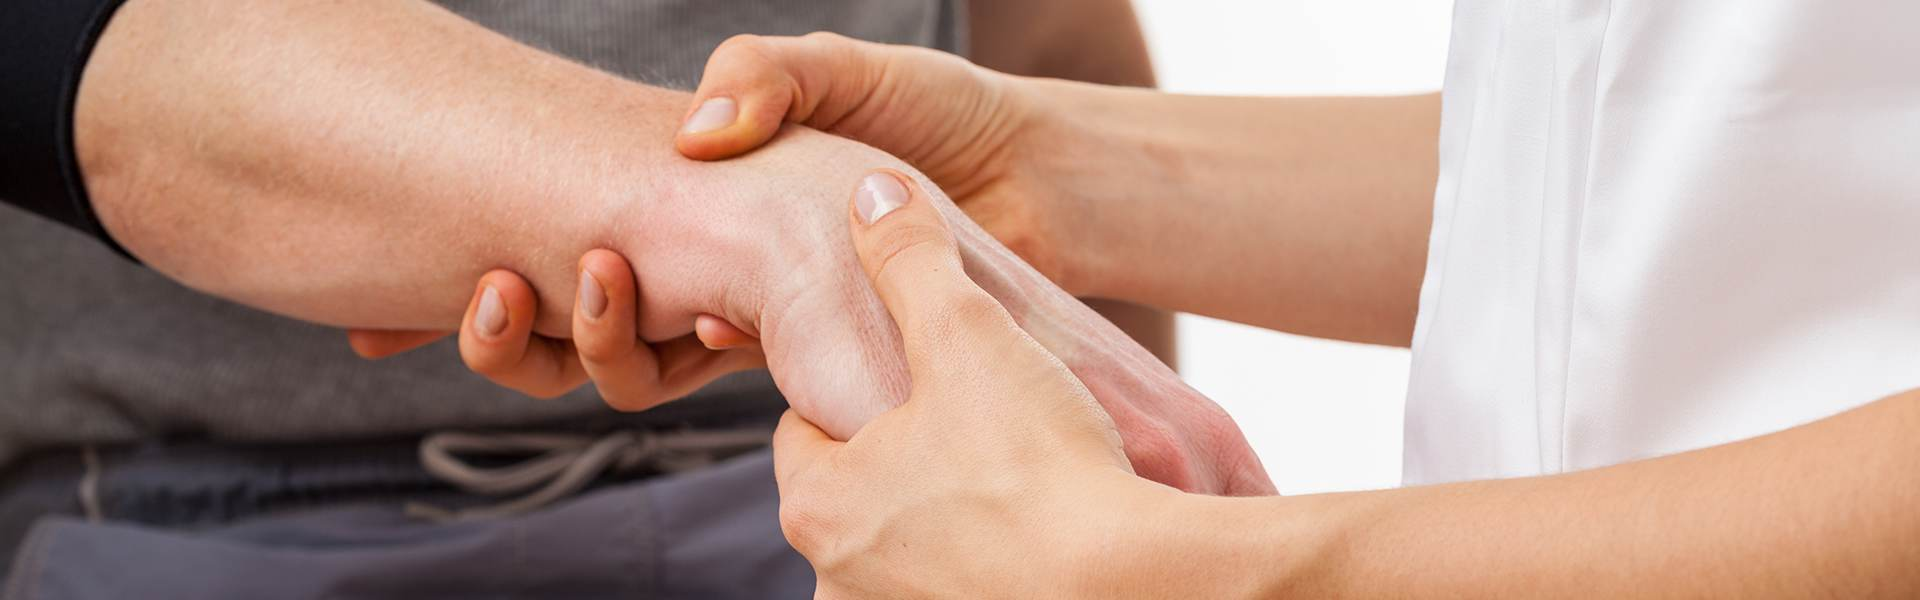 Is It Time To Call a Personal Injury Lawyer?